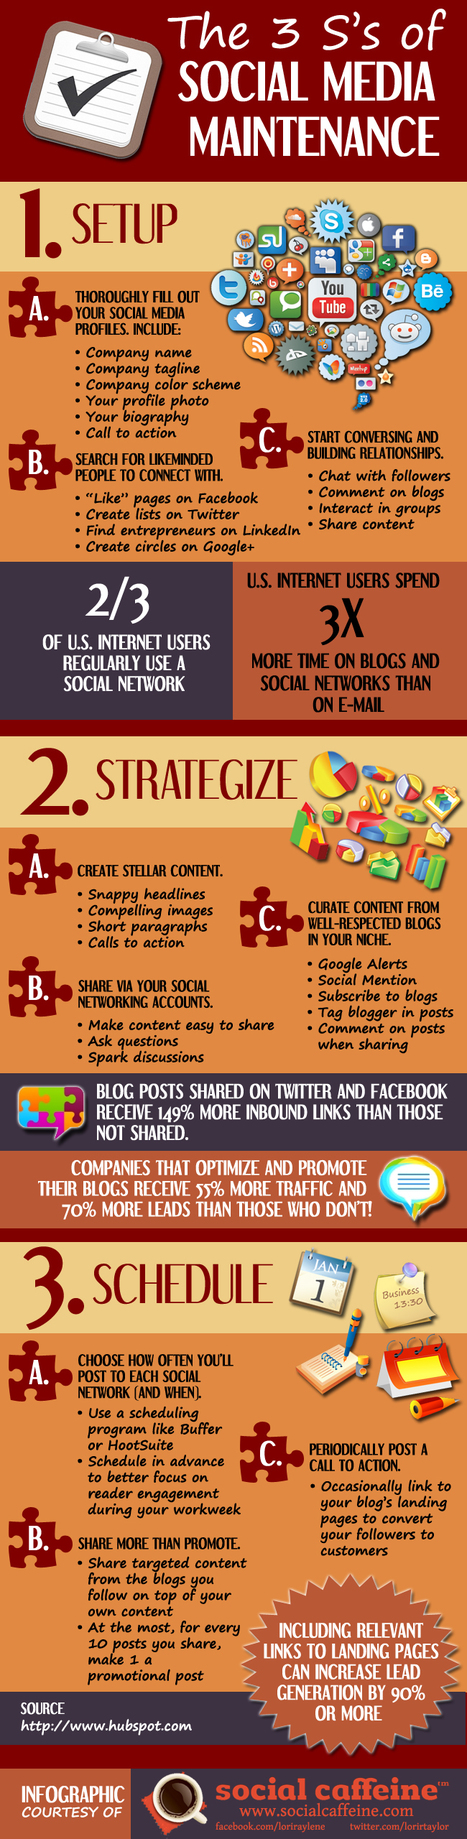 3 S's of Social Media: Setup, Strategize and Schedule [Infographic] | Social Media Useful Info | Scoop.it